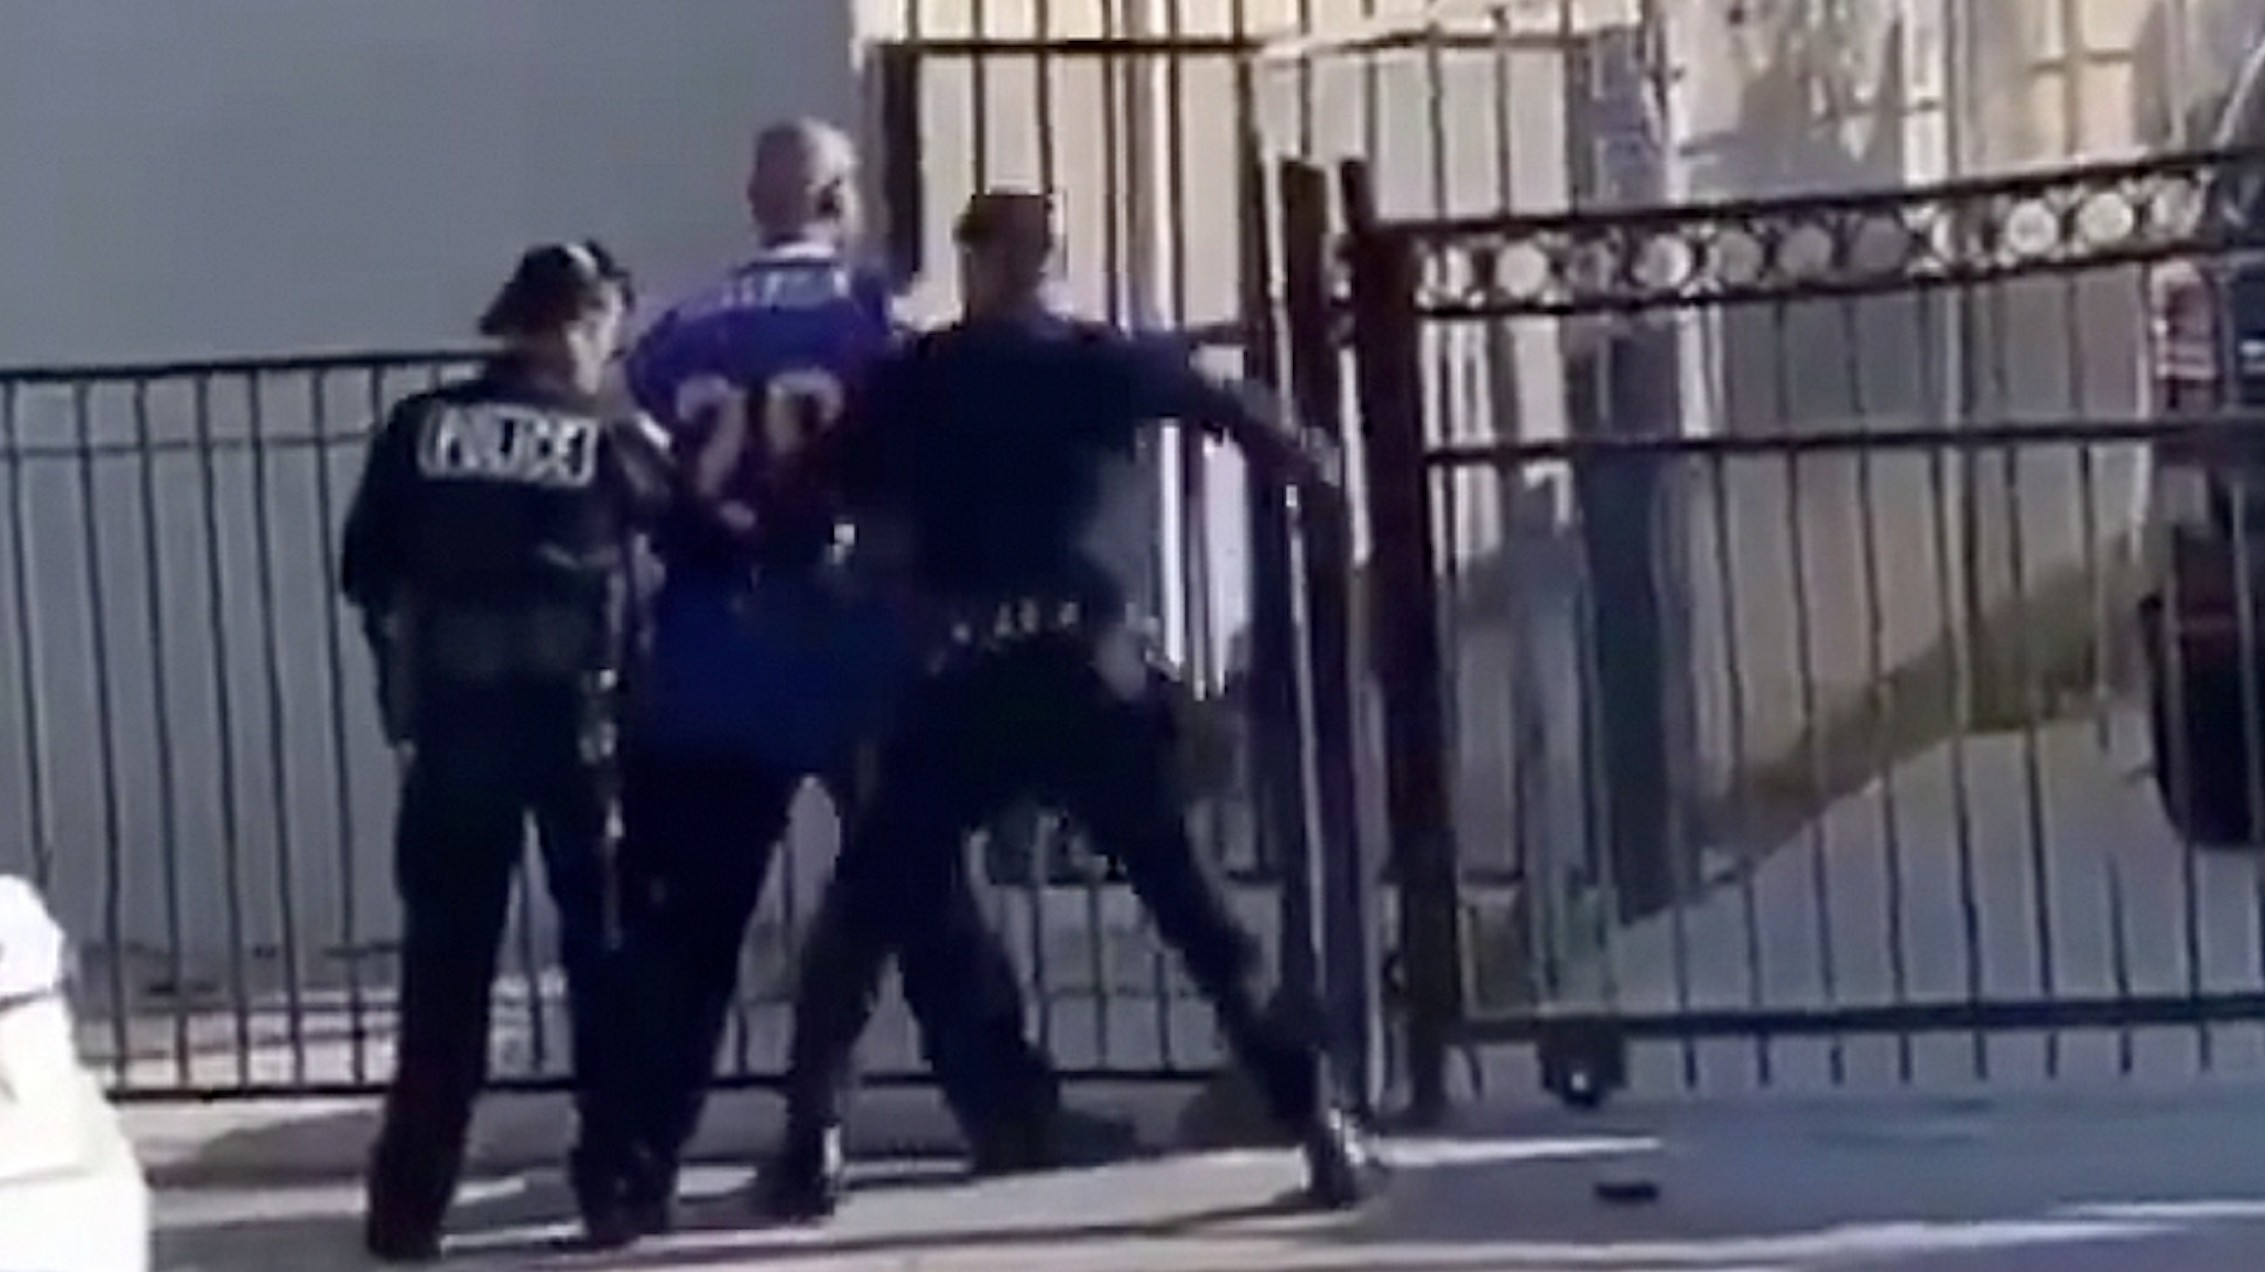 , The Homeless LA Man Who Got Punched by a Cop in That Viral Video Is Now Suing the City, Saubio Making Wealth